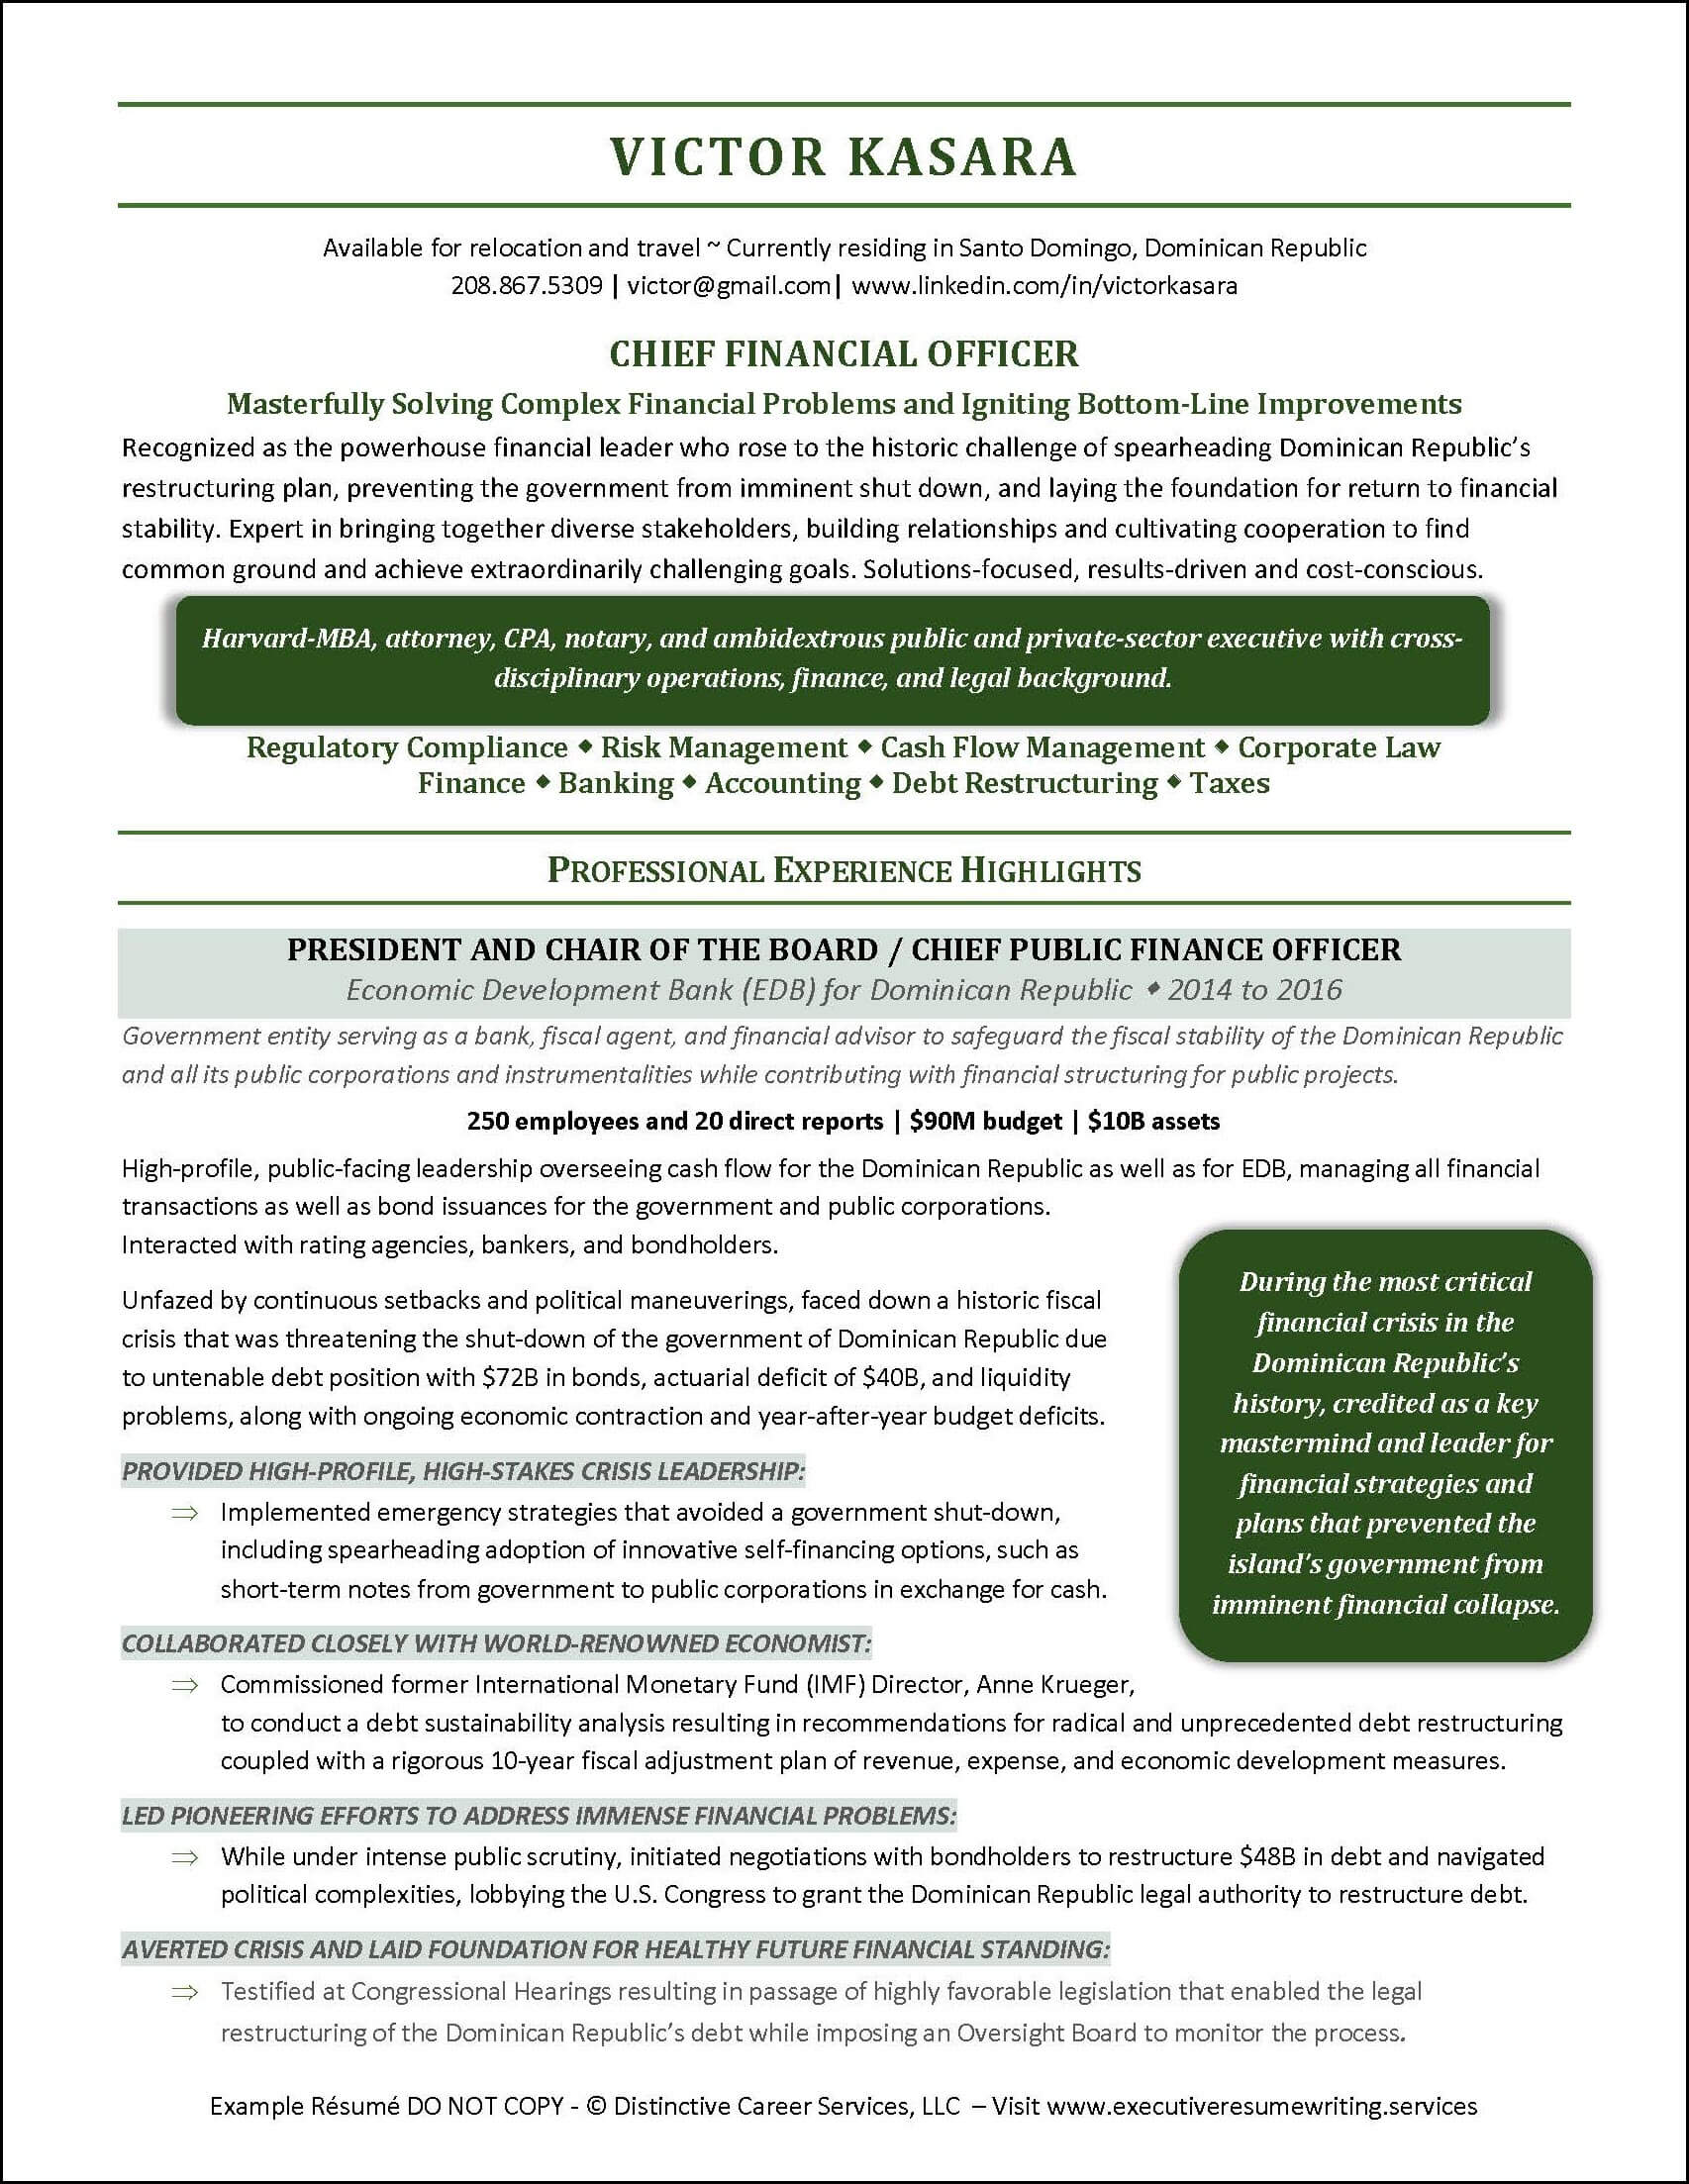 Chief Financial Officer Resume Page 1